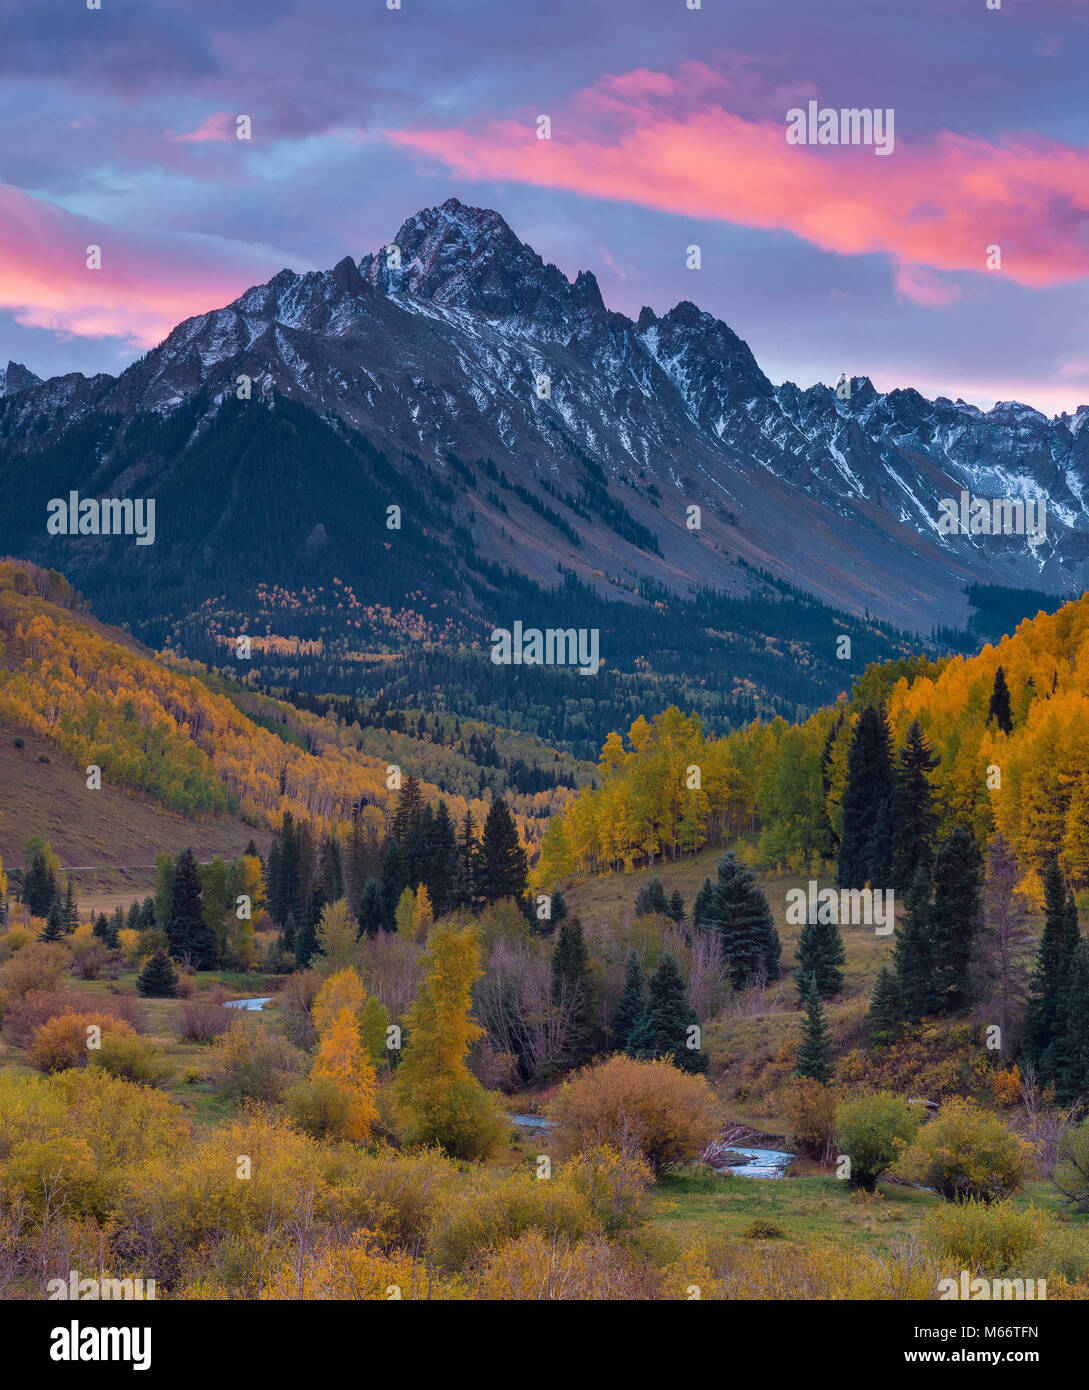 Dawn, Aspen, Willow Swamp, Mount Sneffels, Uncompahgre National Forest, Colorado - Stock Image